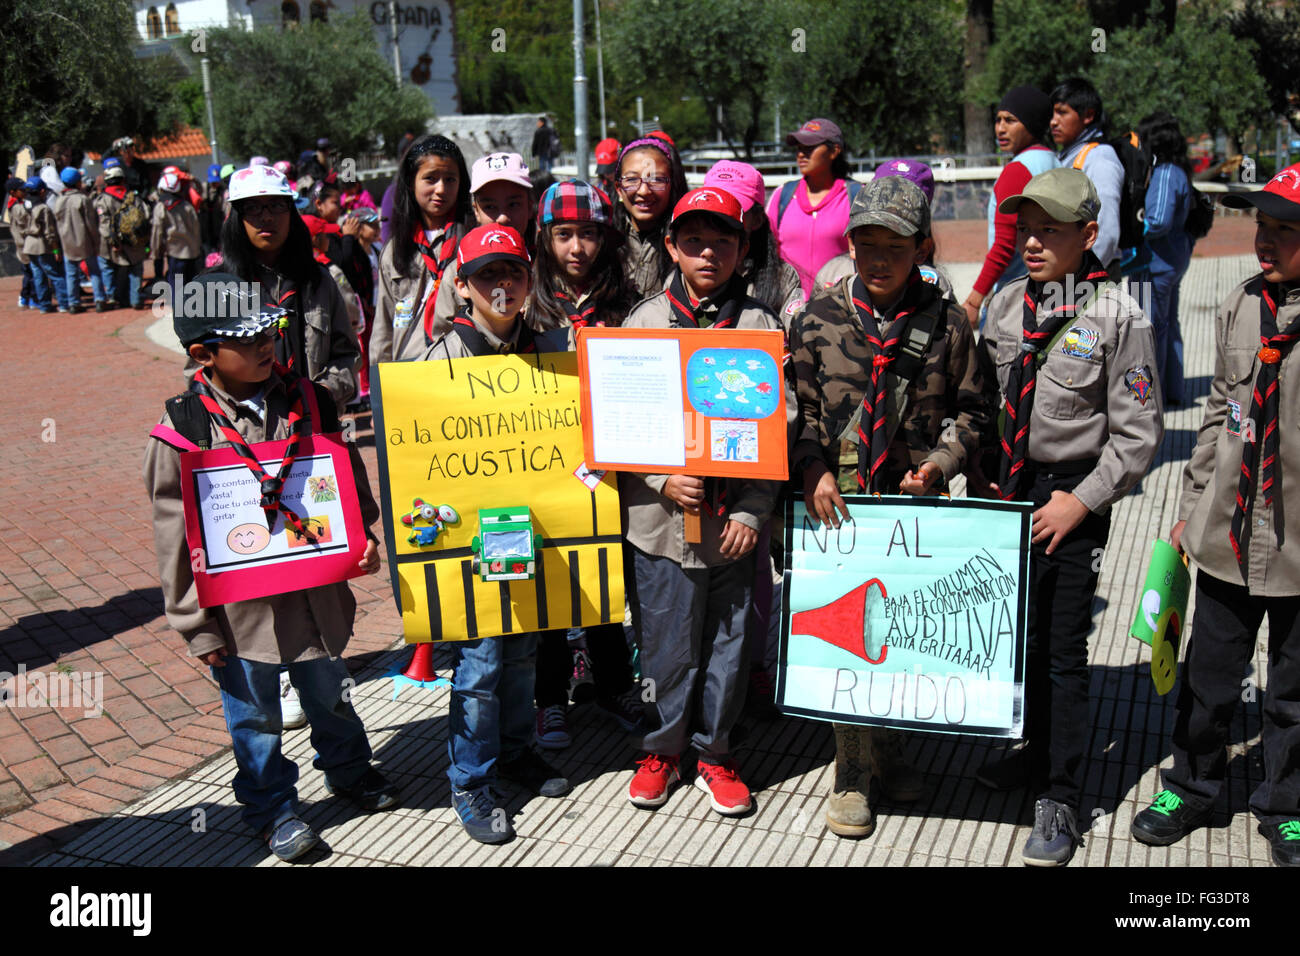 Les écoliers pour protester contre la pollution sonore, La Paz, Bolivie Photo Stock